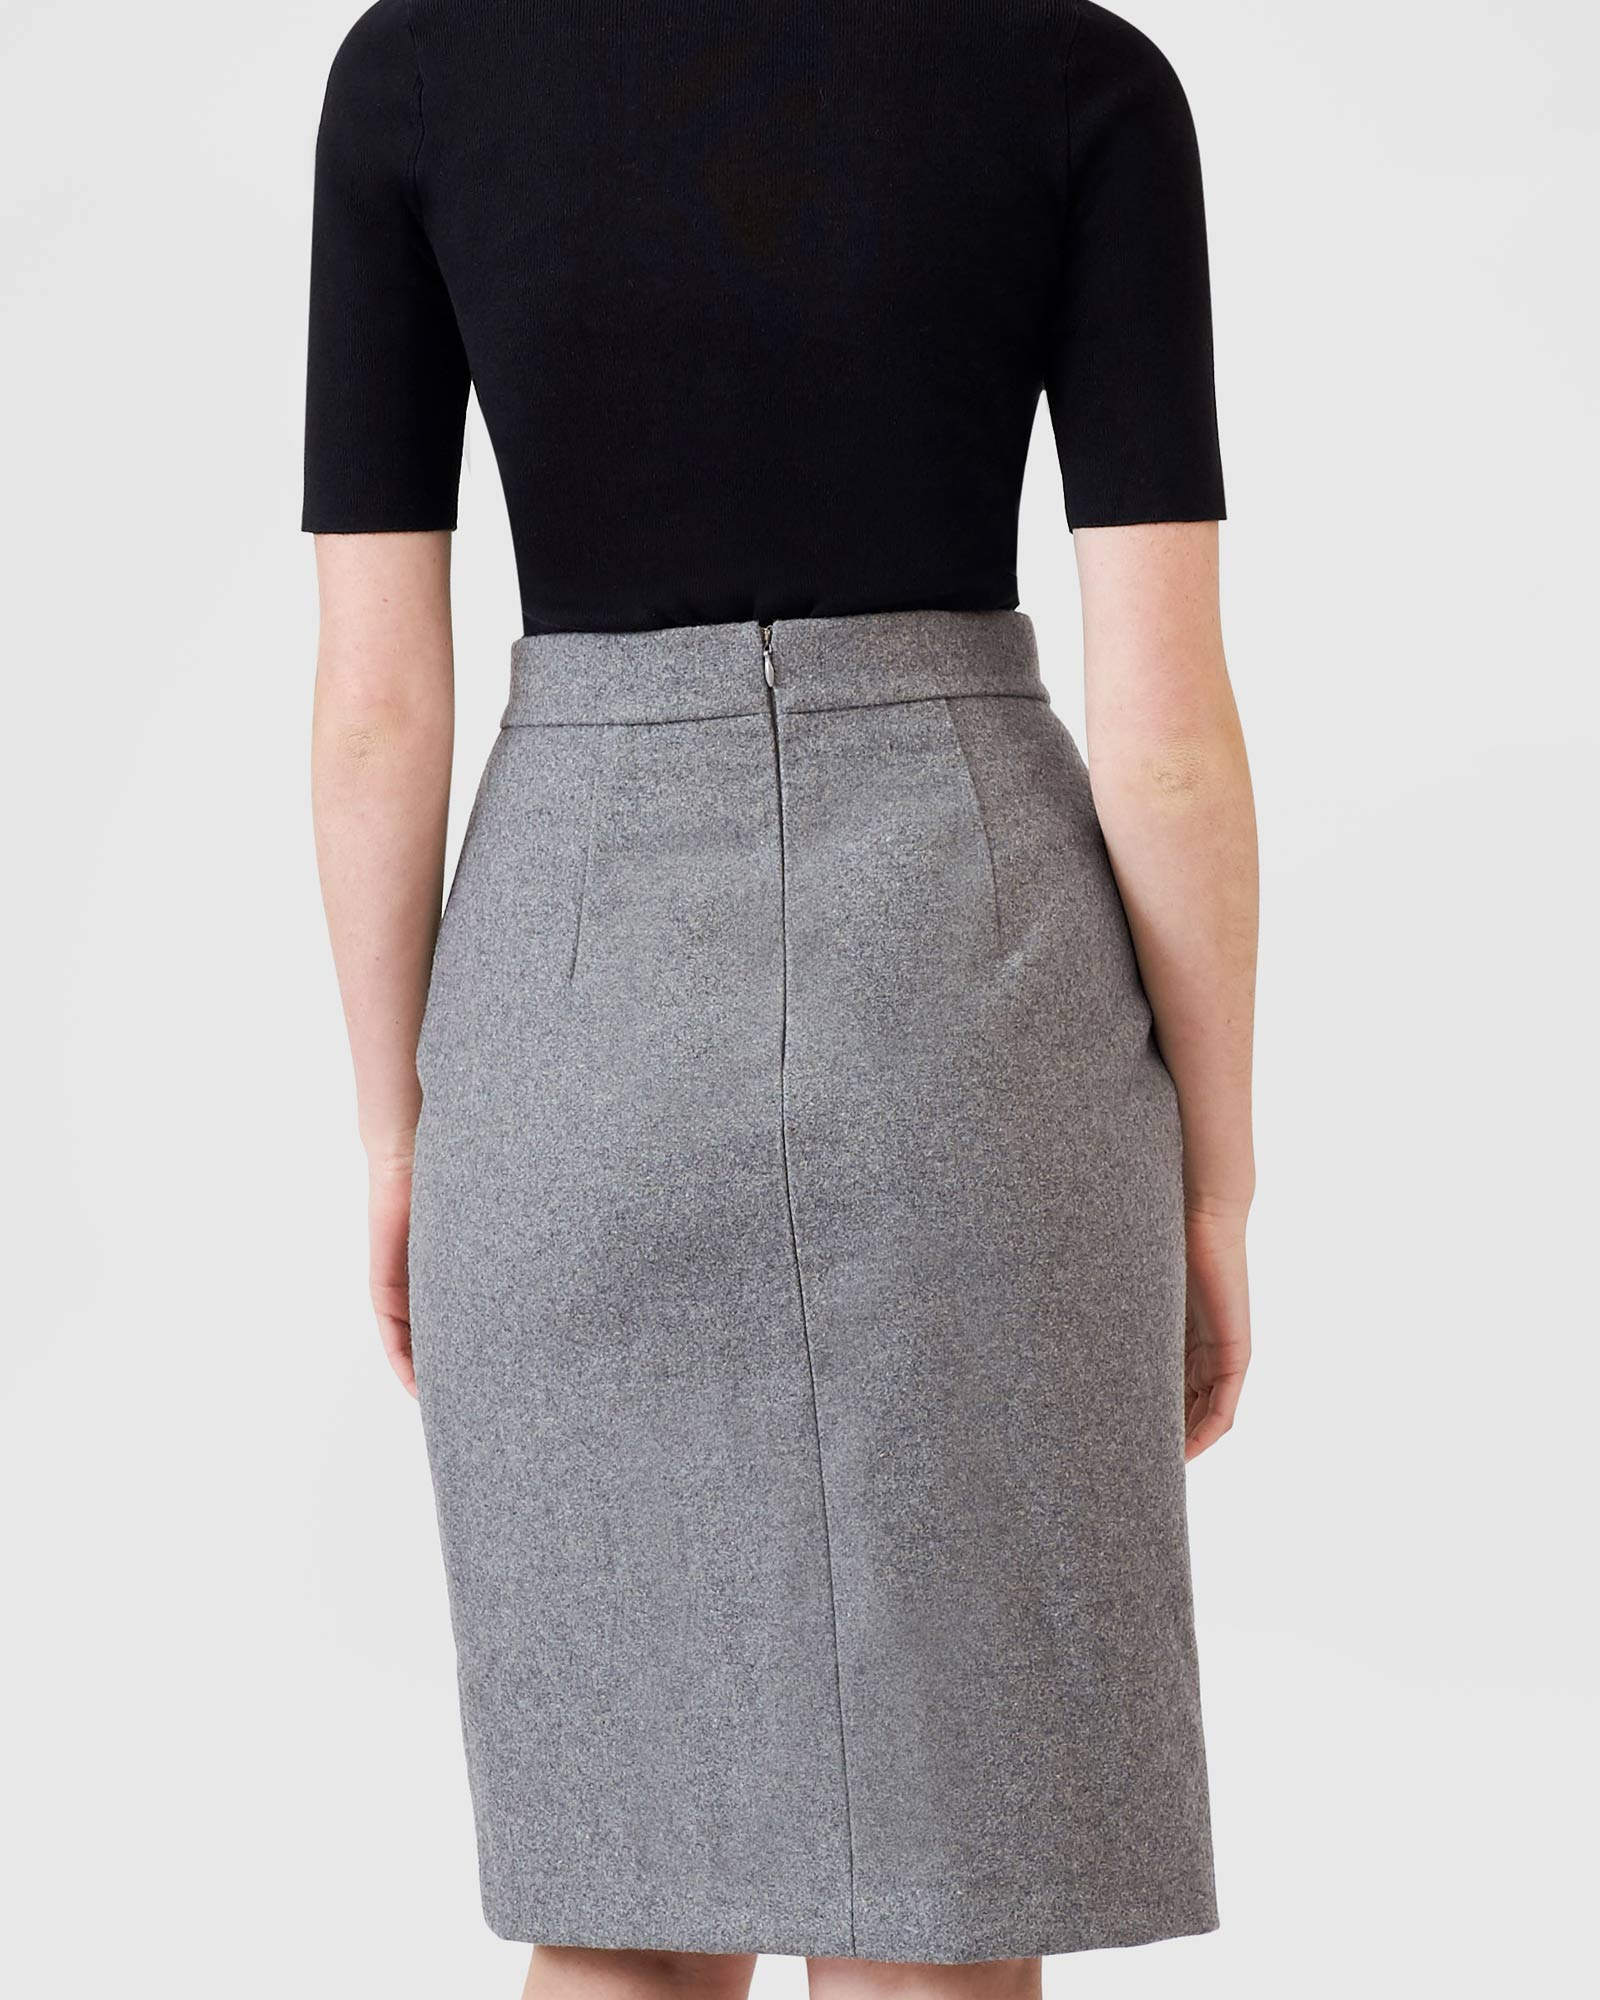 Wool Crossover Skirt - Grey